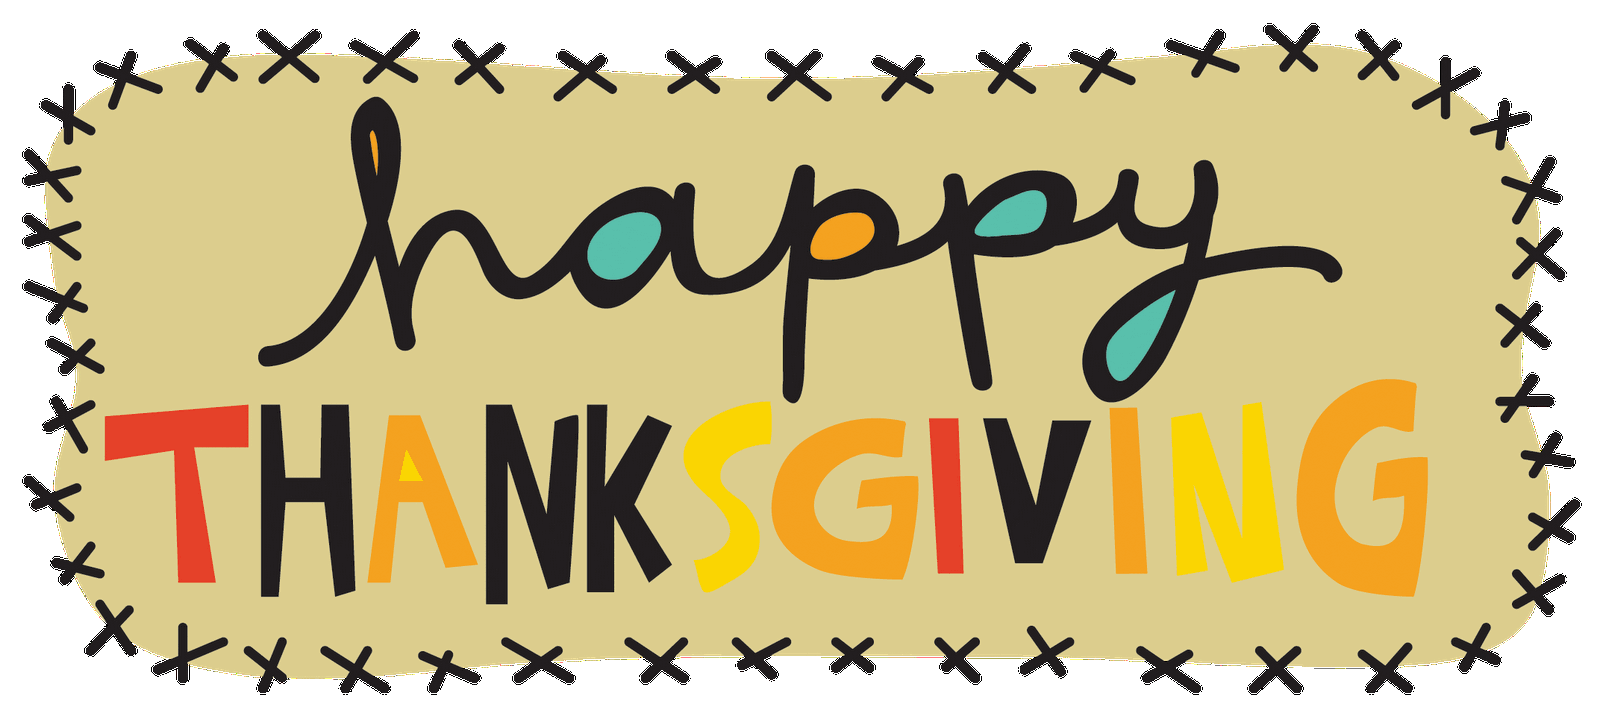 Free clipart for thanksgiving for children clip library Thanksgiving Clipart For Kids at GetDrawings.com | Free for personal ... clip library